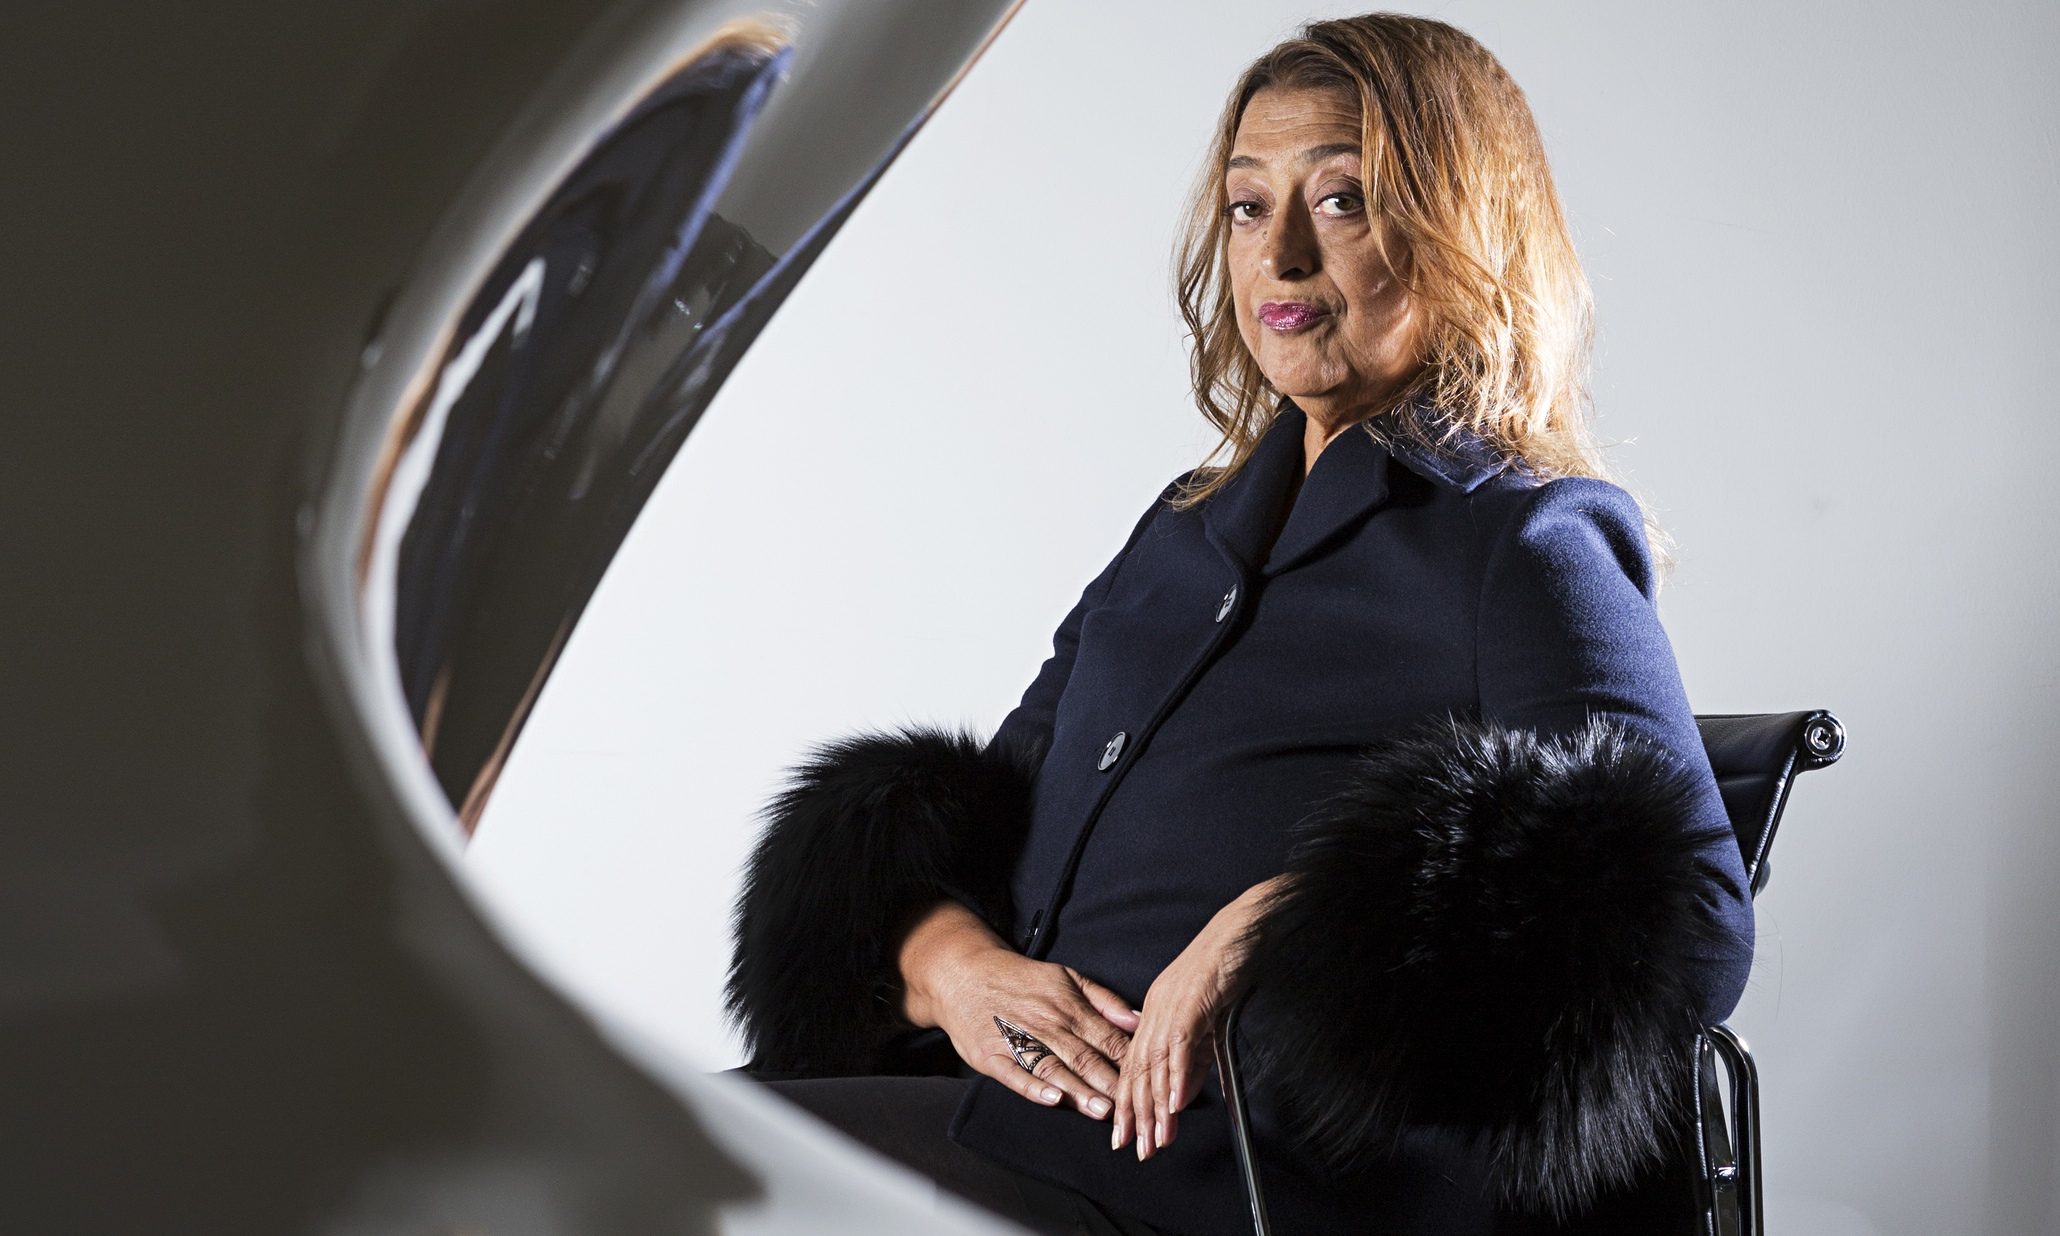 Photo of Zaha Hadid: biography, projects, success zaha hadid: biography, projects, success Zaha Hadid: biography, projects, success Zaha Hadid 009